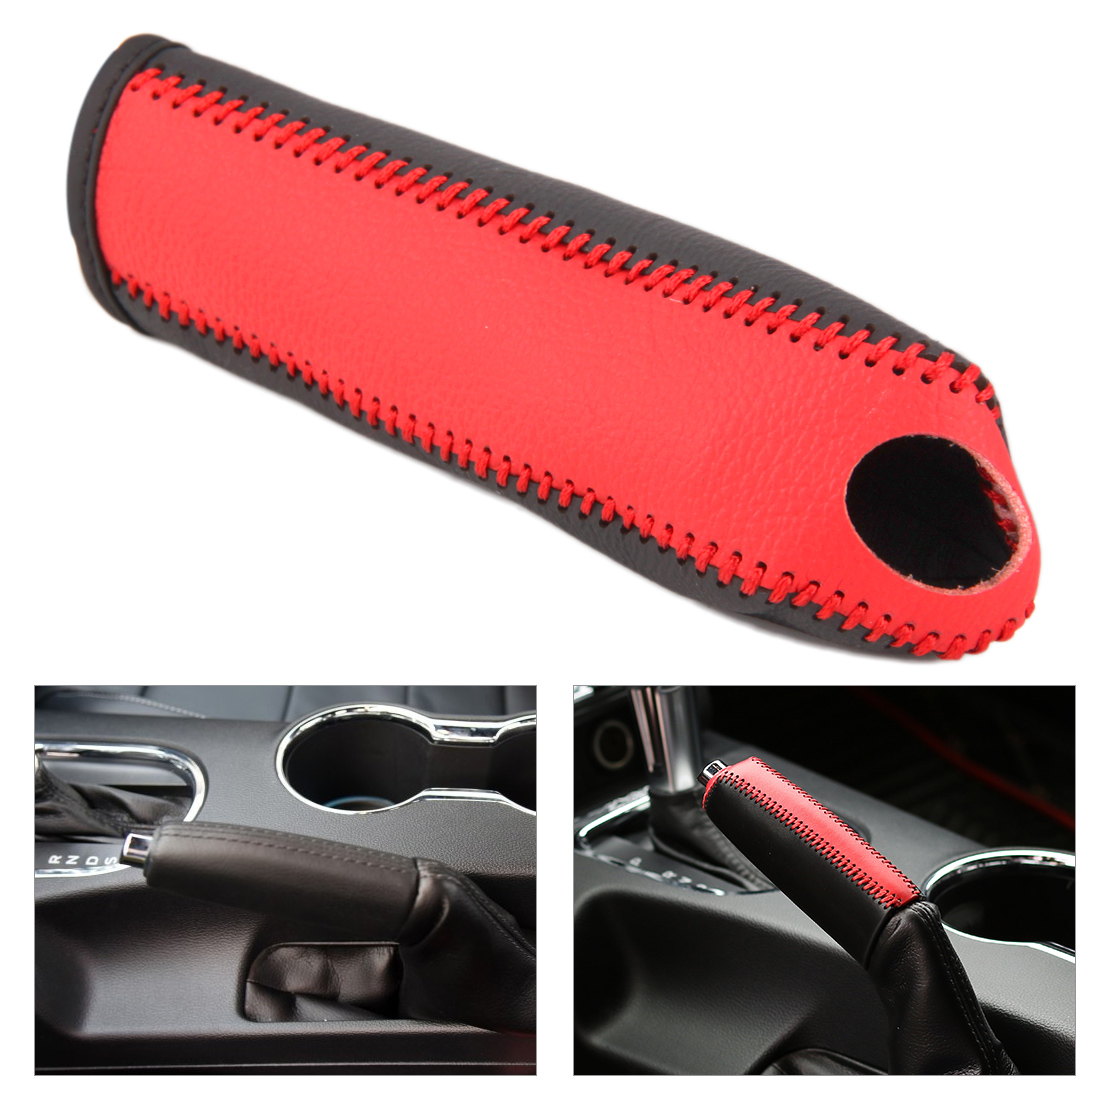 Beler 1Pc Black & Red Anti-slip  Leather Car Auto Handbrake Cover Trim Protective Sleeve Fit For Ford Mustang 2015-2016